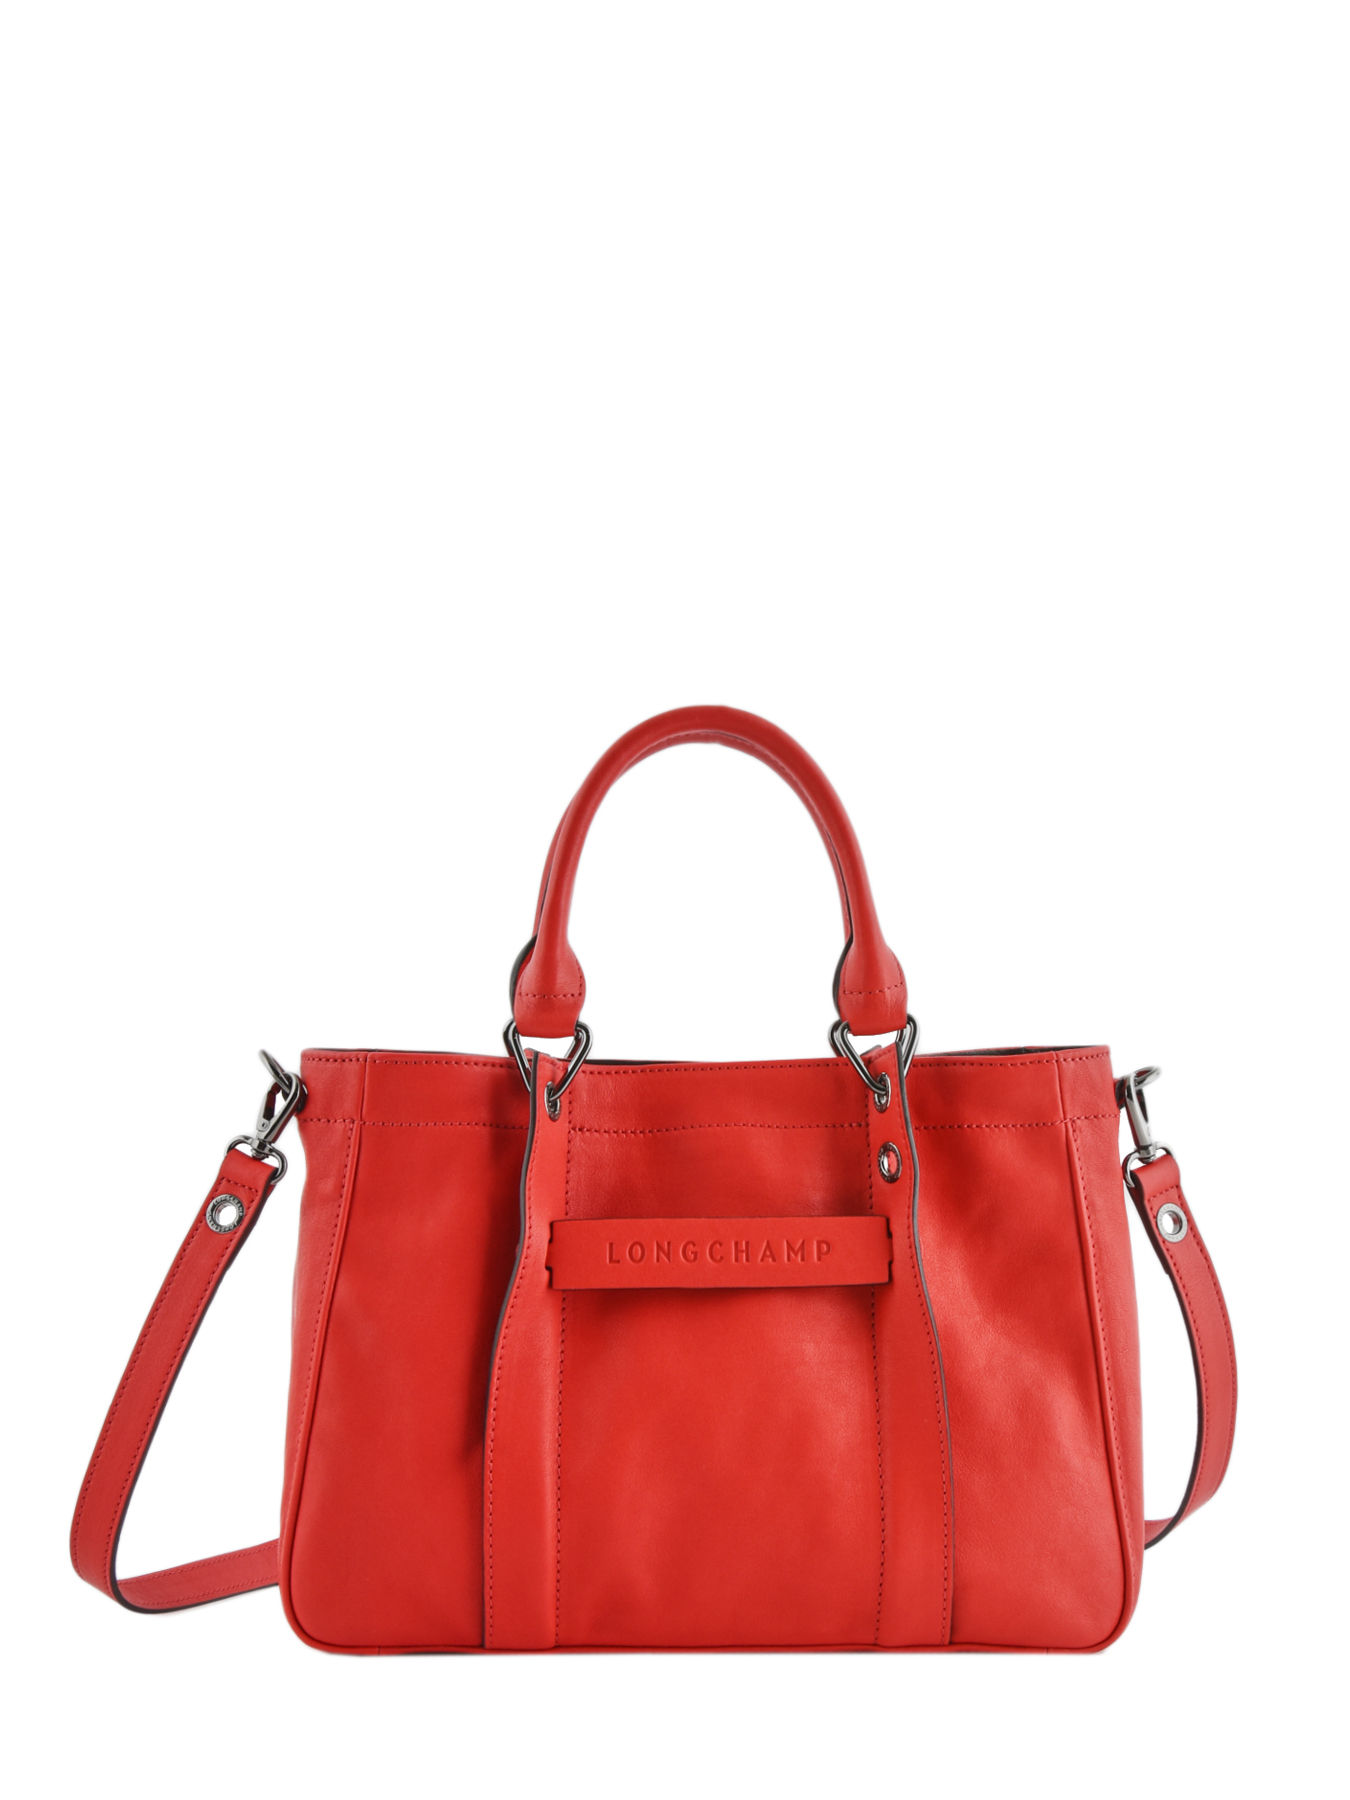 longchamp 3d 2018 > Up to 65% OFF > Free shipping